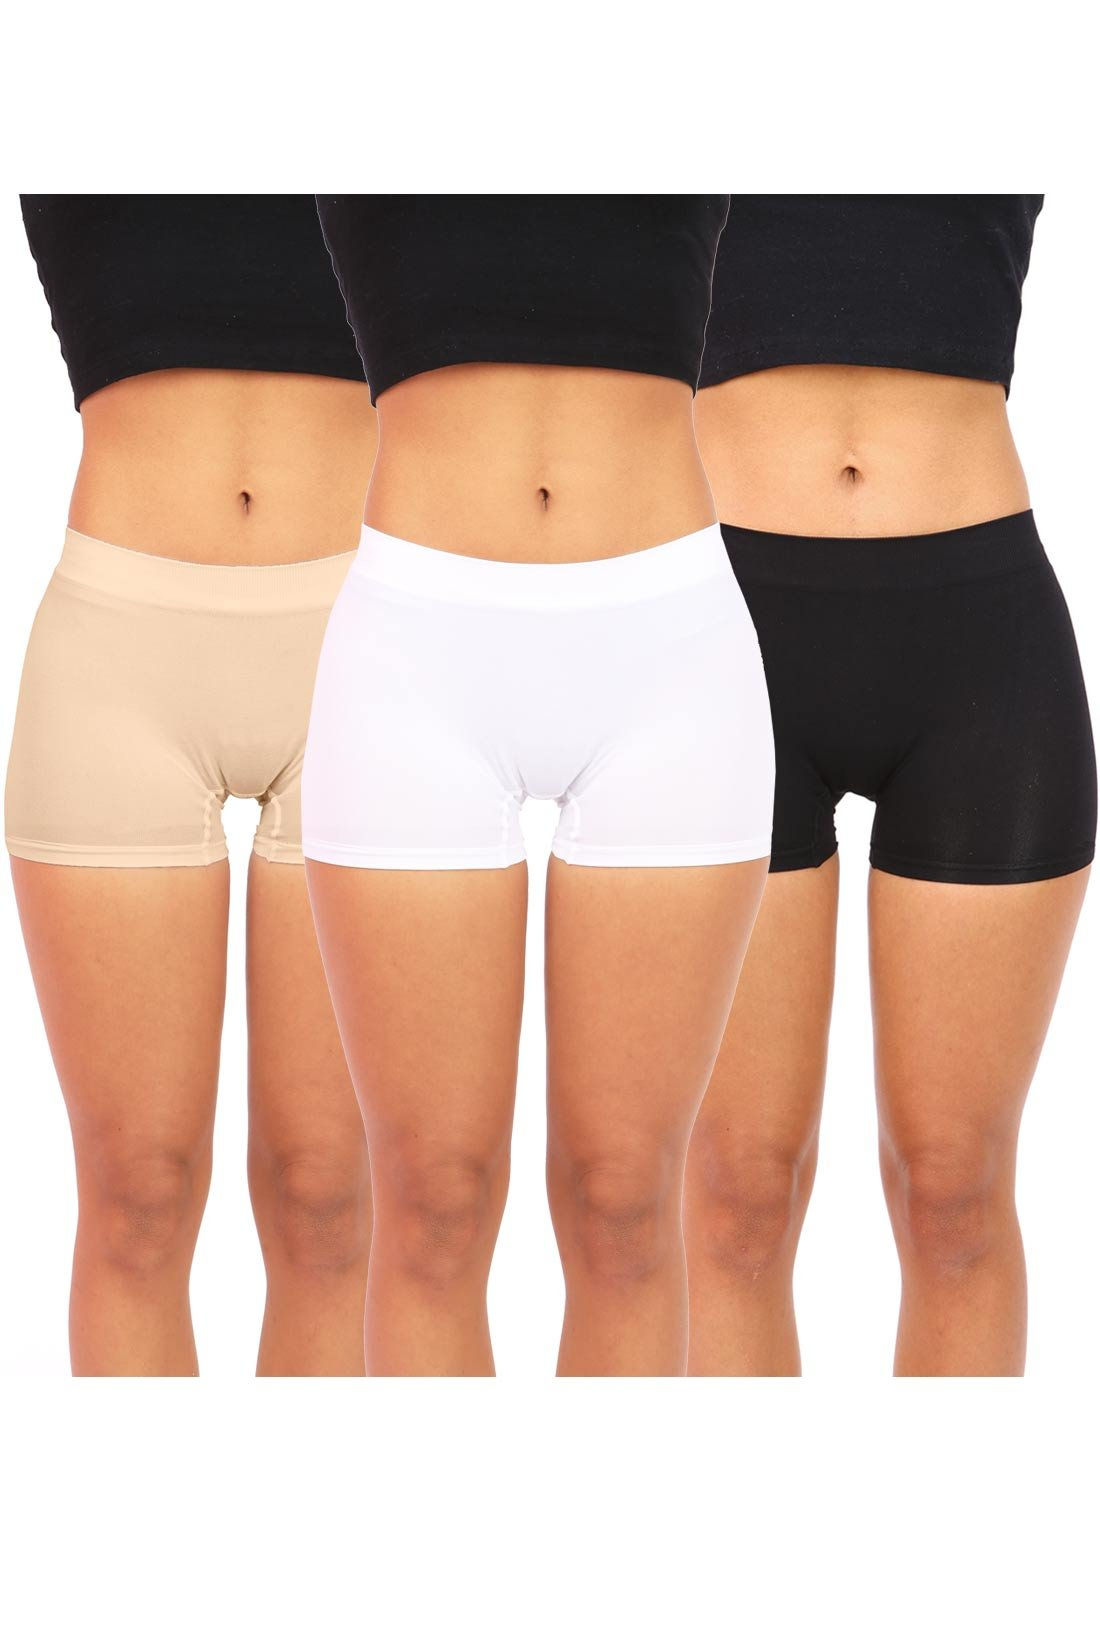 Anemone Bundle Pack 3 Items Women's Juniors Spandex Boy Shorts (o/s, Black, White & Nude)